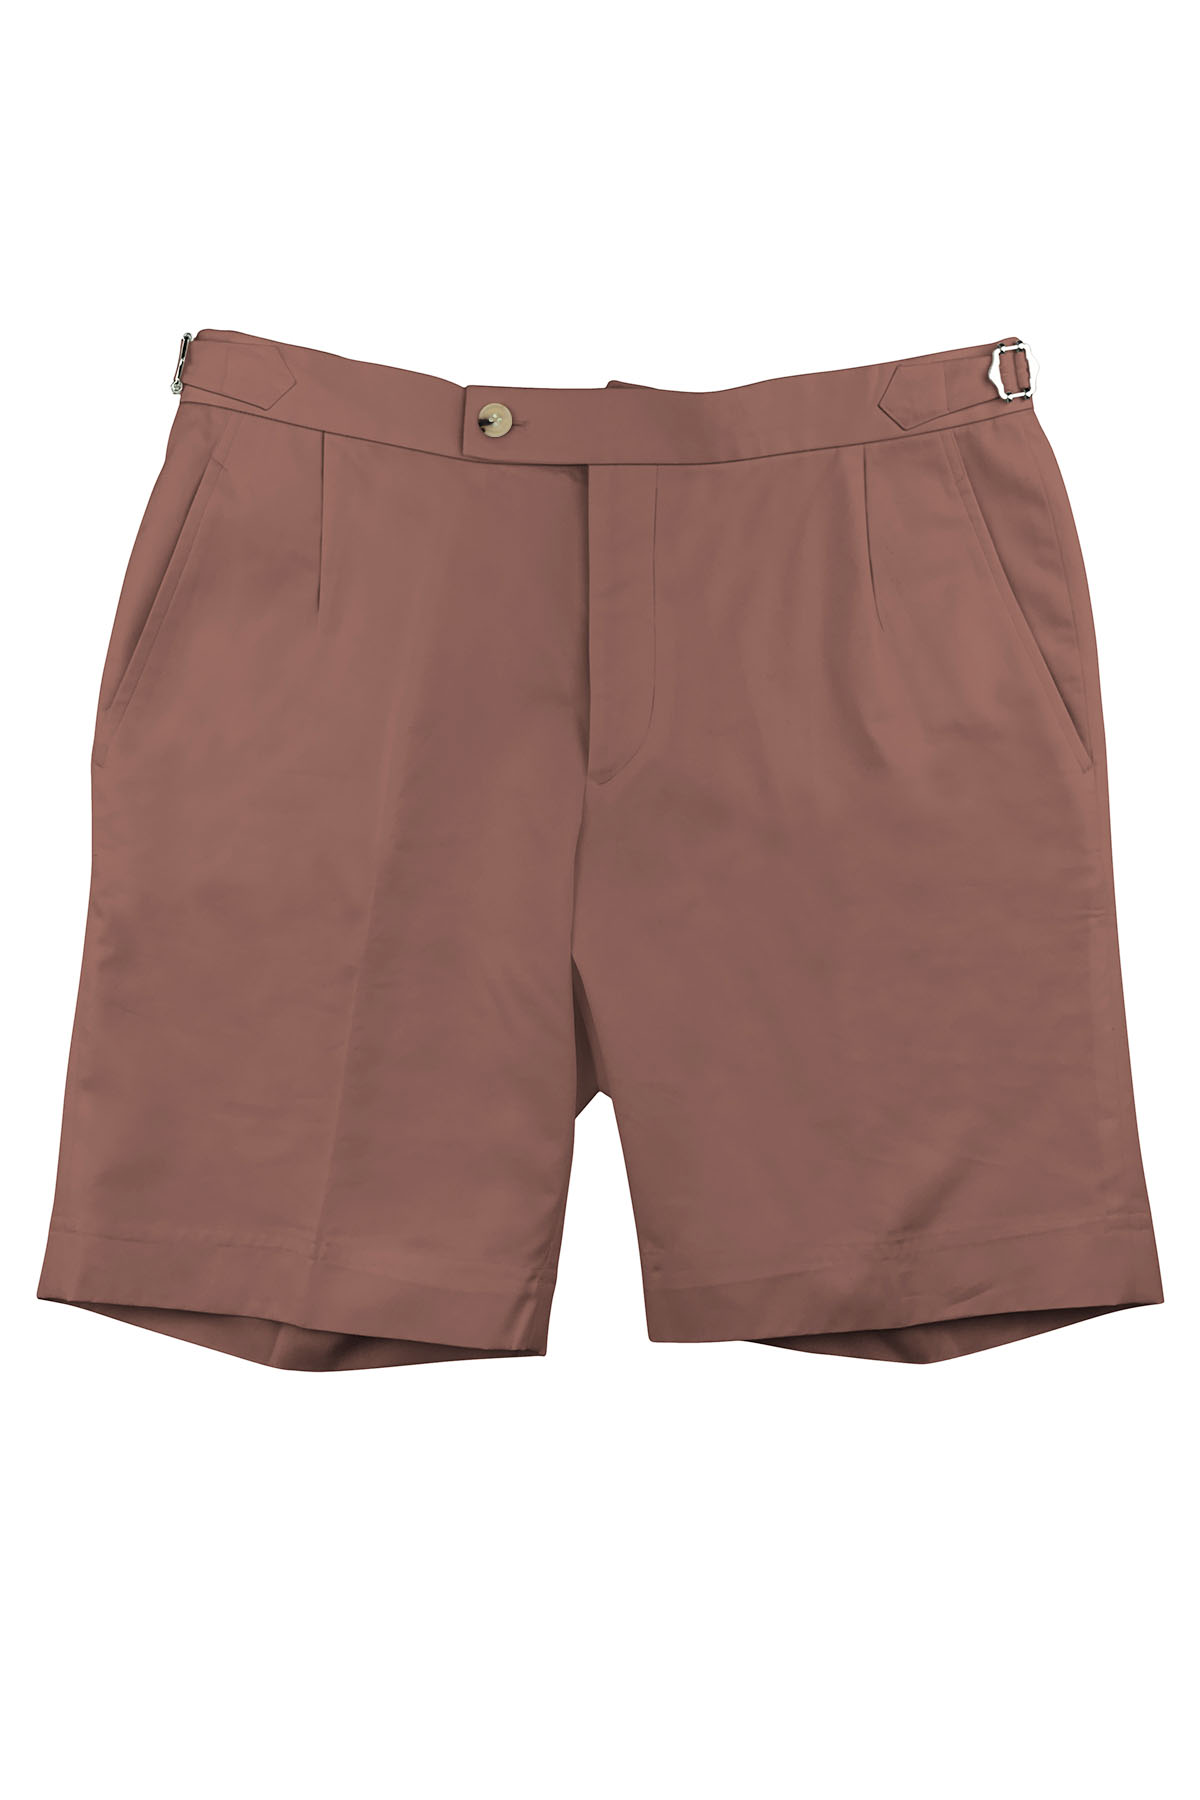 Burnt Salmon Cotton Shorts